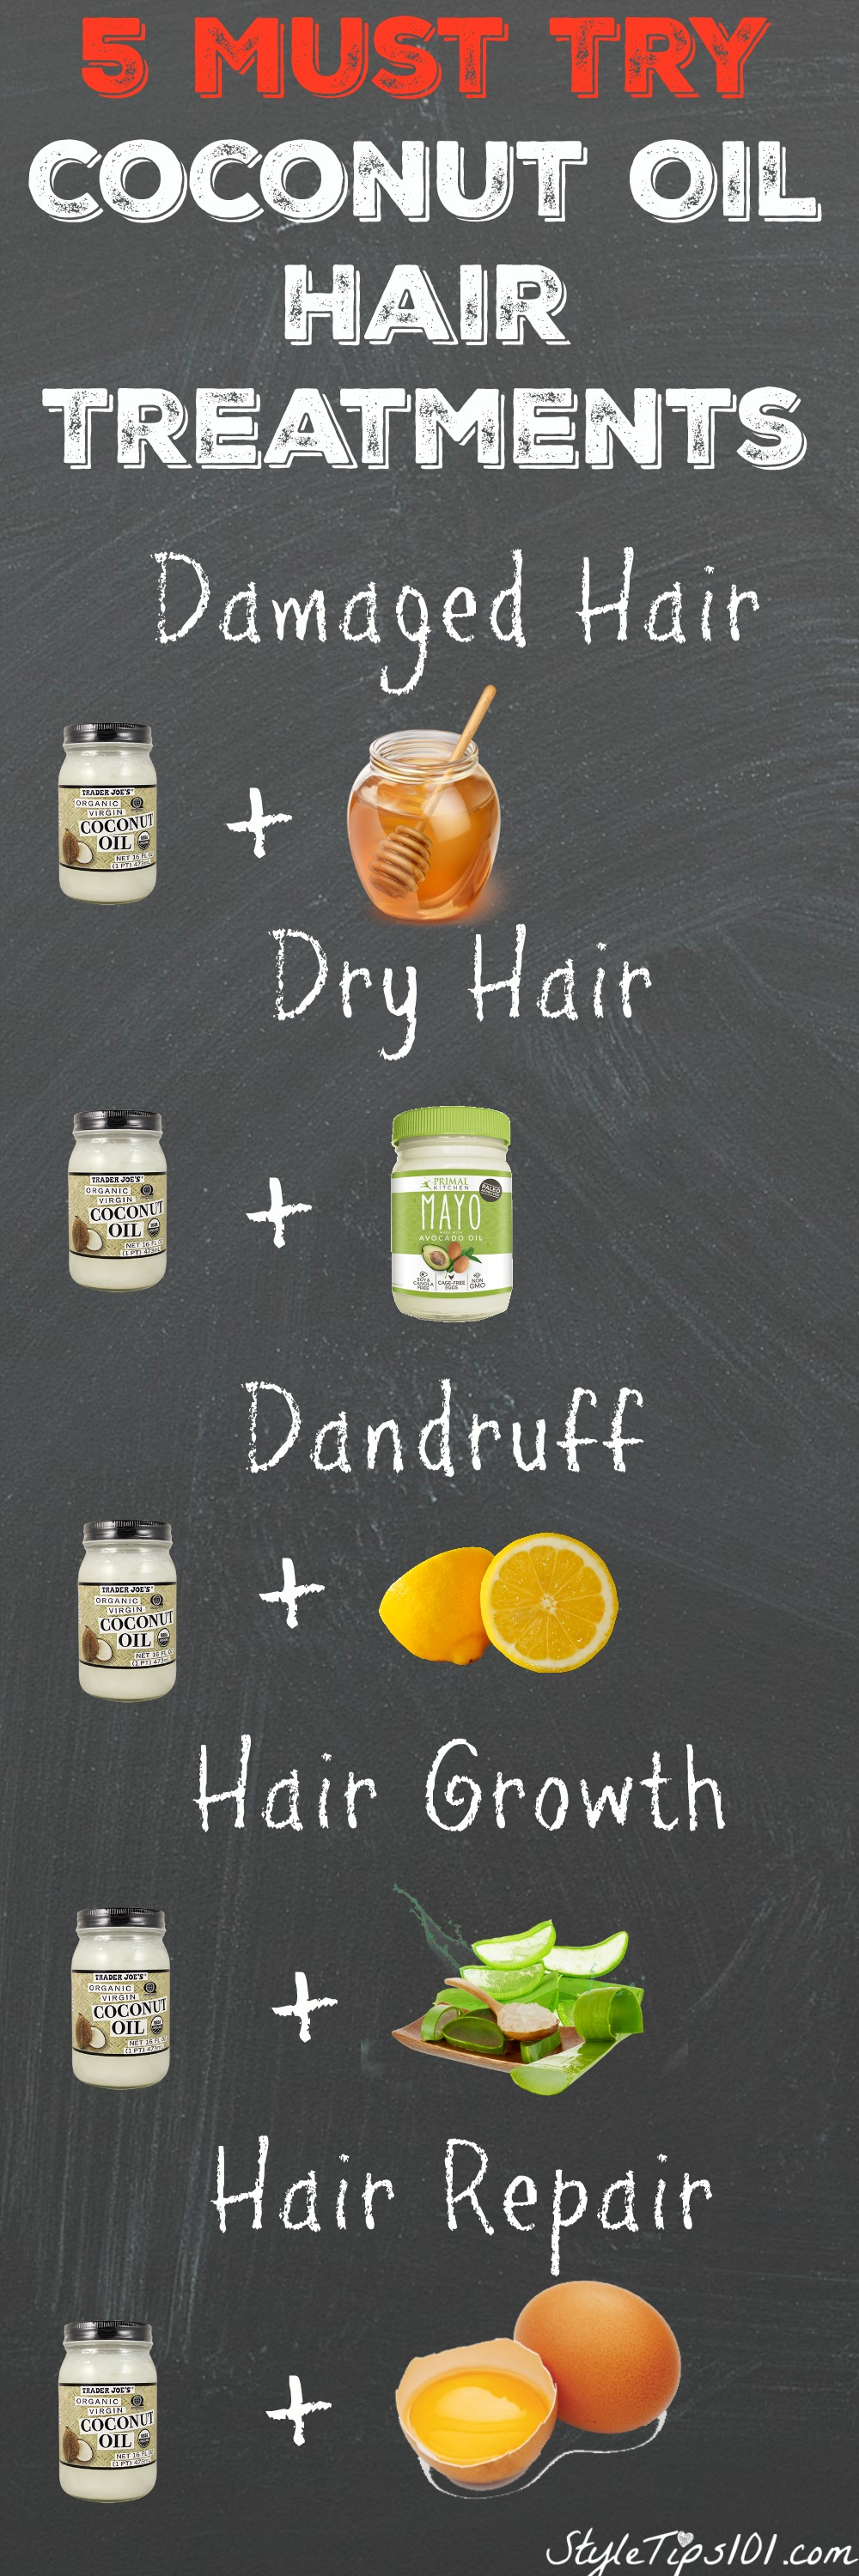 coconut oil hair treatments